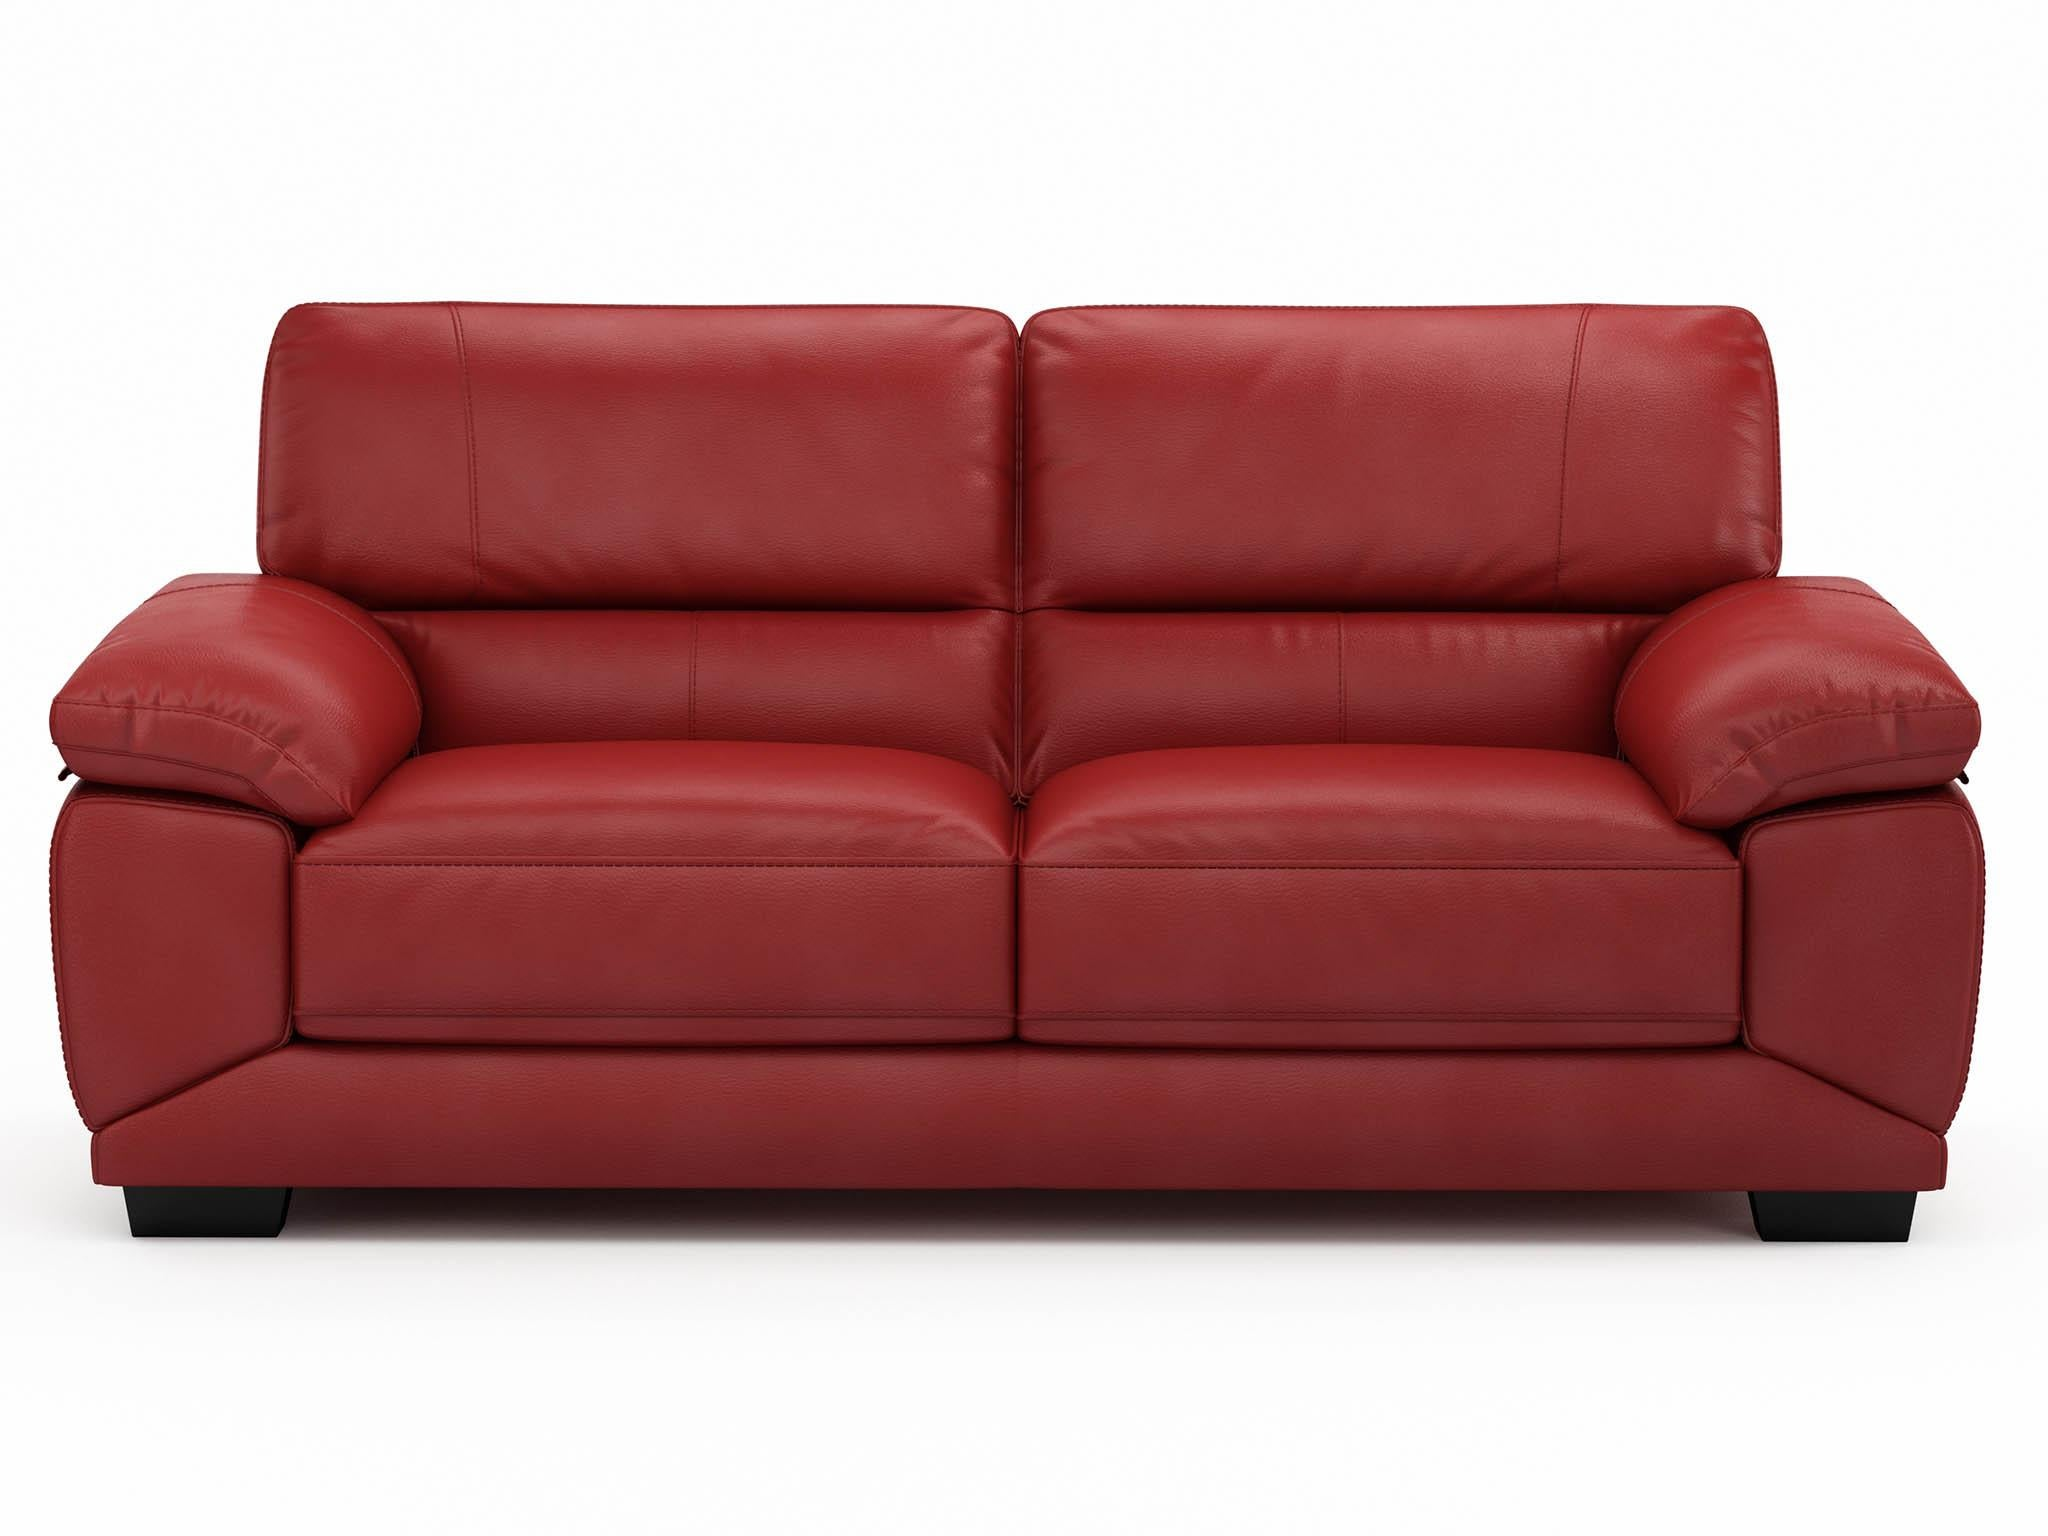 Fine 10 Best Leather Sofas The Independent Ocoug Best Dining Table And Chair Ideas Images Ocougorg